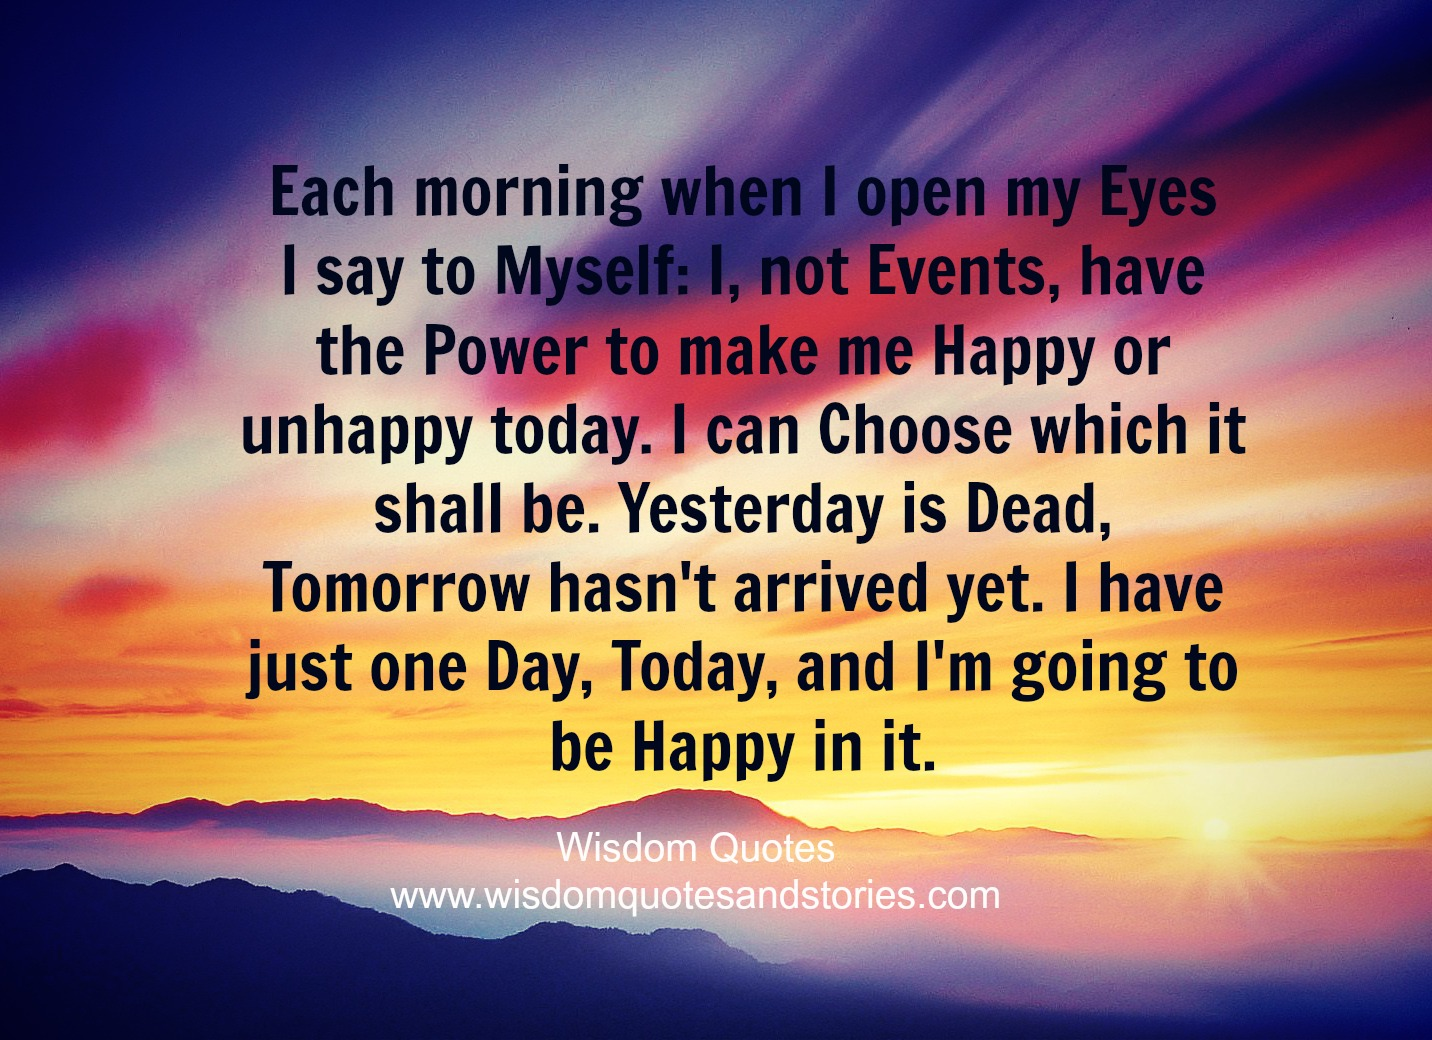 Each morning when I open my eyes I say to myself I have just one day today and I am going to be happy in it